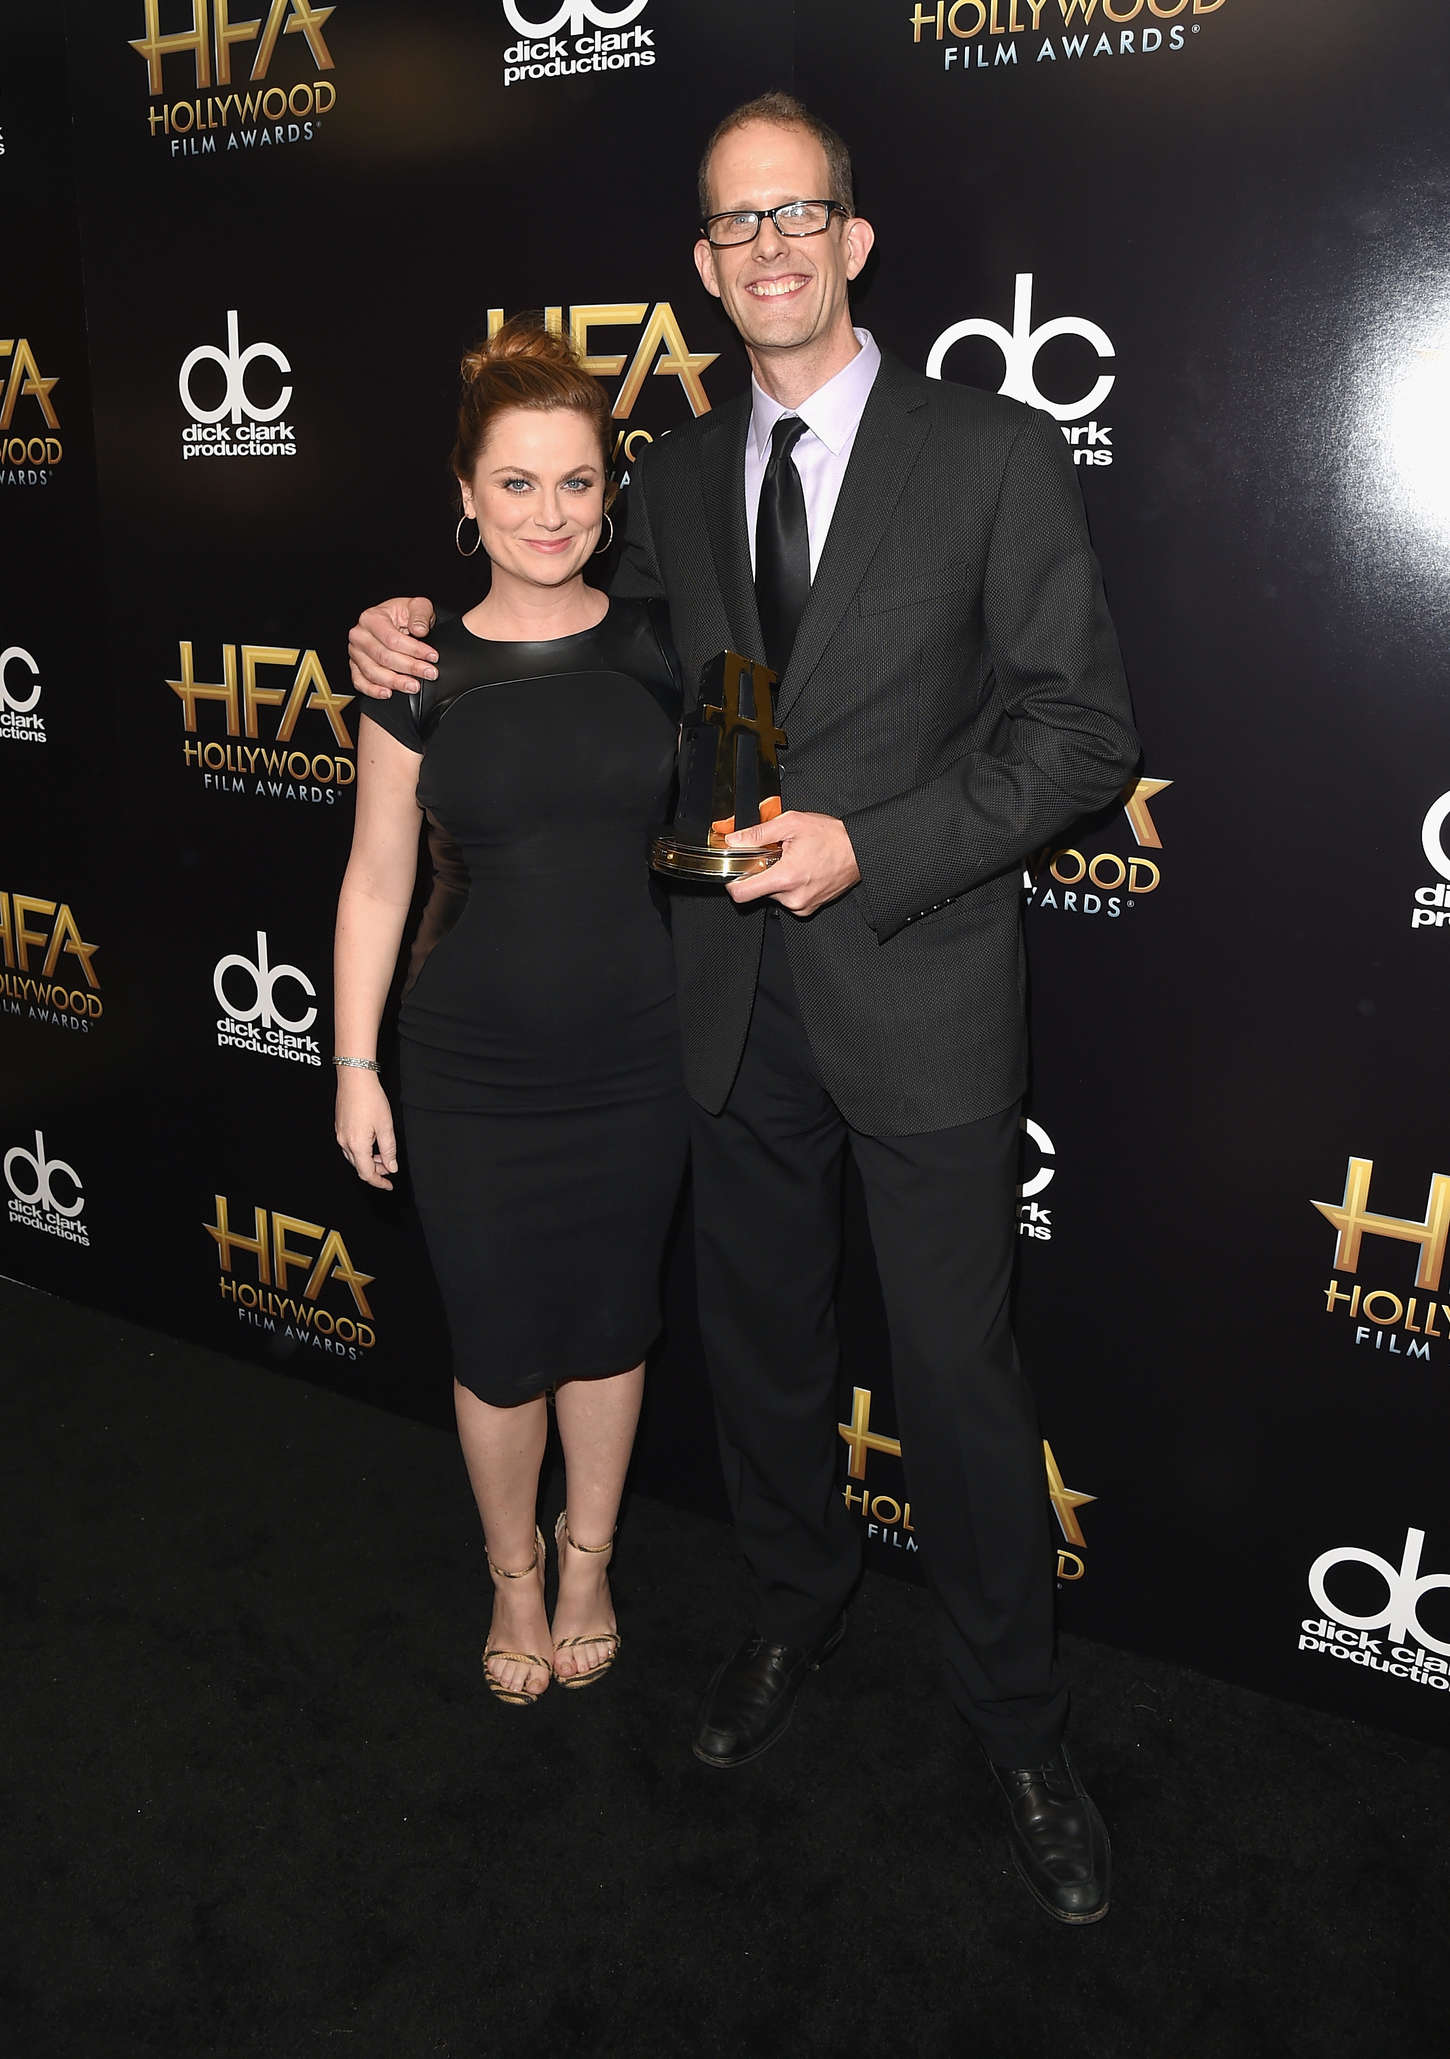 Amy Poehler Annual Hollywood Film Awards in Beverly Hills